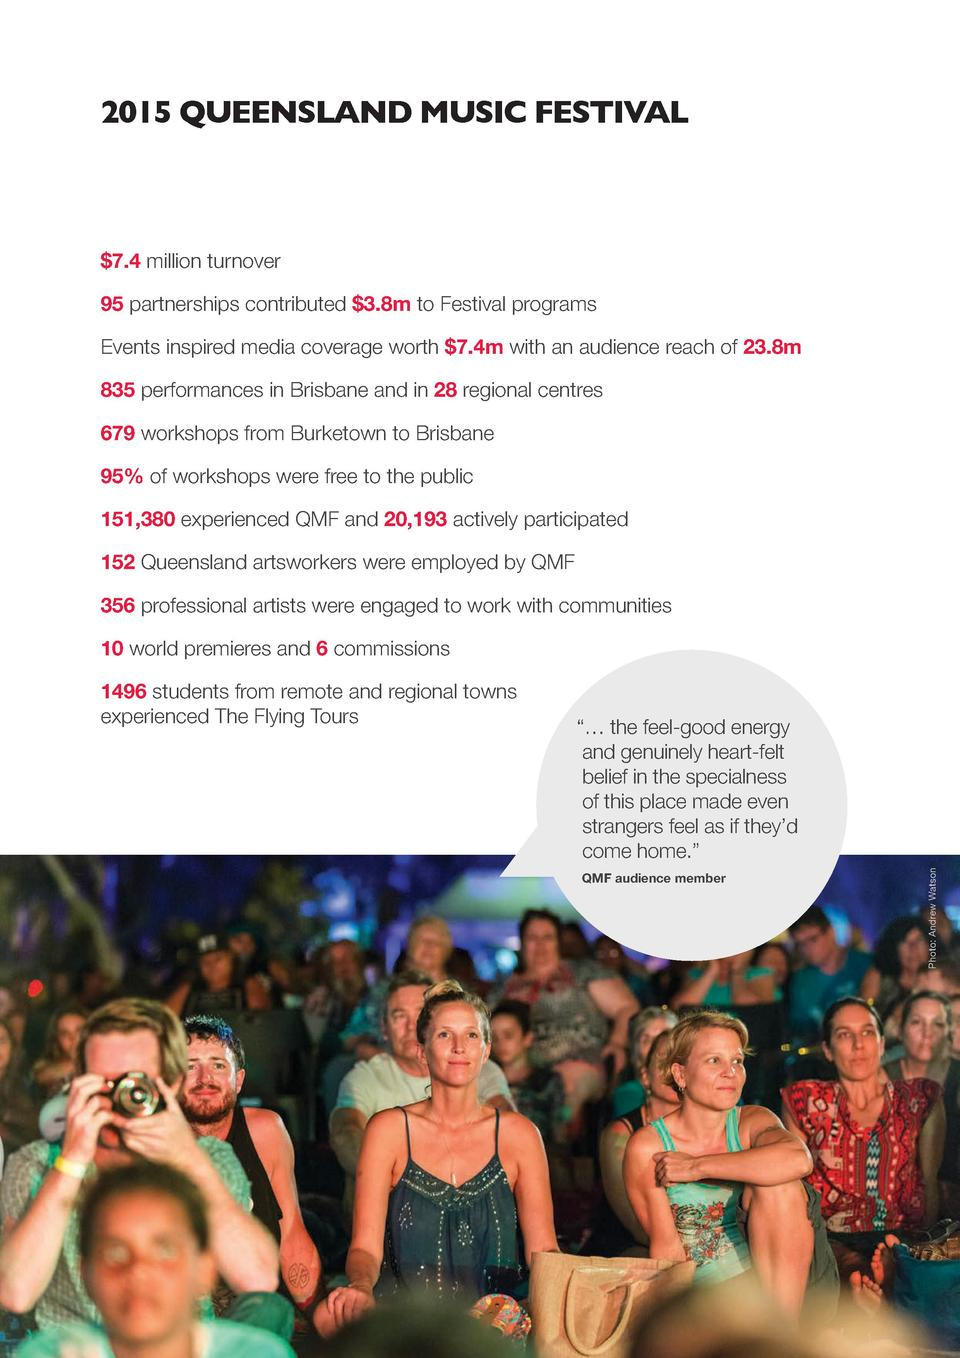 2015 QUEENSLAND MUSIC FESTIVAL   7.4 million turnover 95 partnerships contributed  3.8m to Festival programs Events inspir...